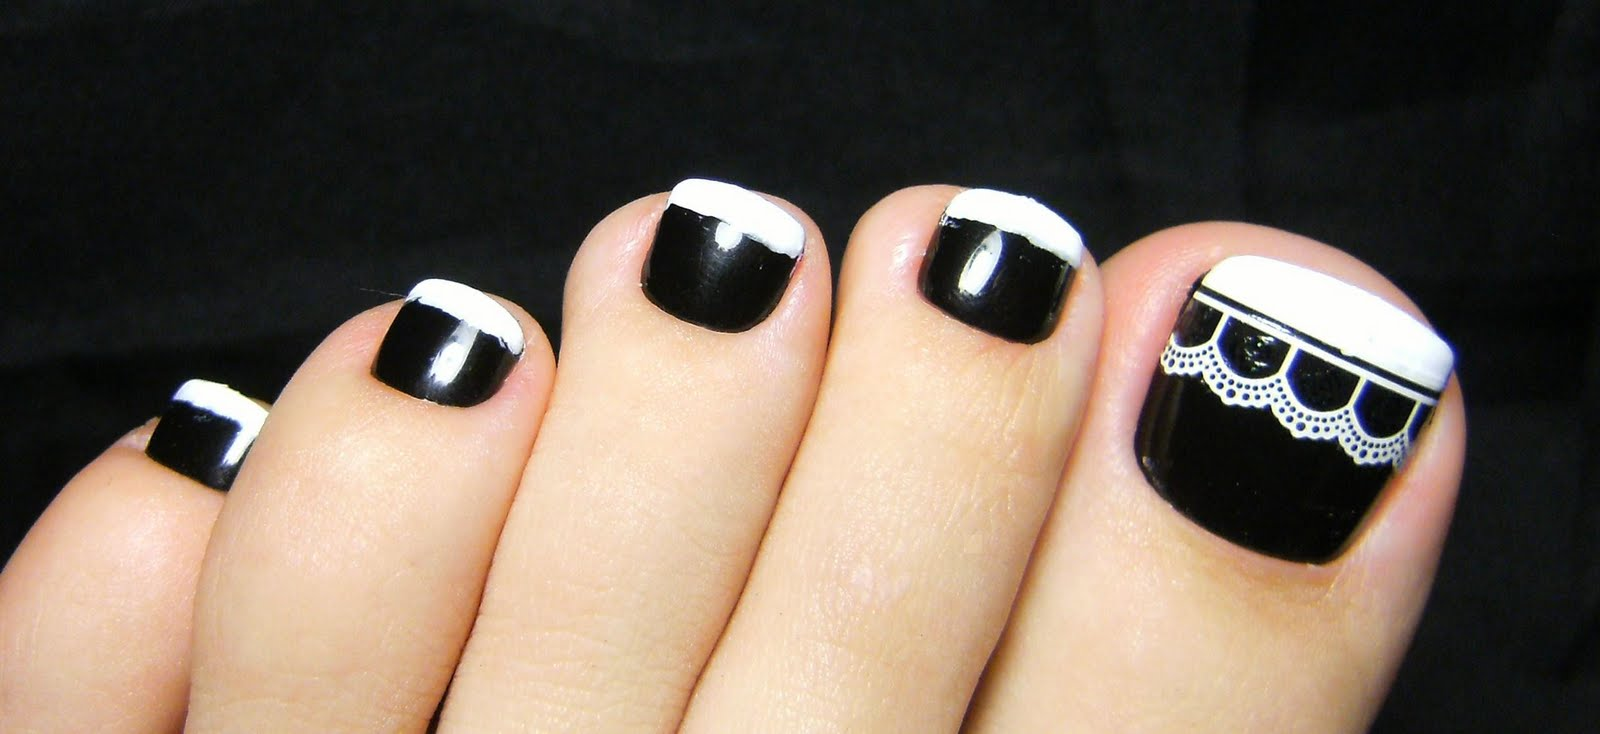 Black Toe Nails With White Lace And Tip Design To Nail Art